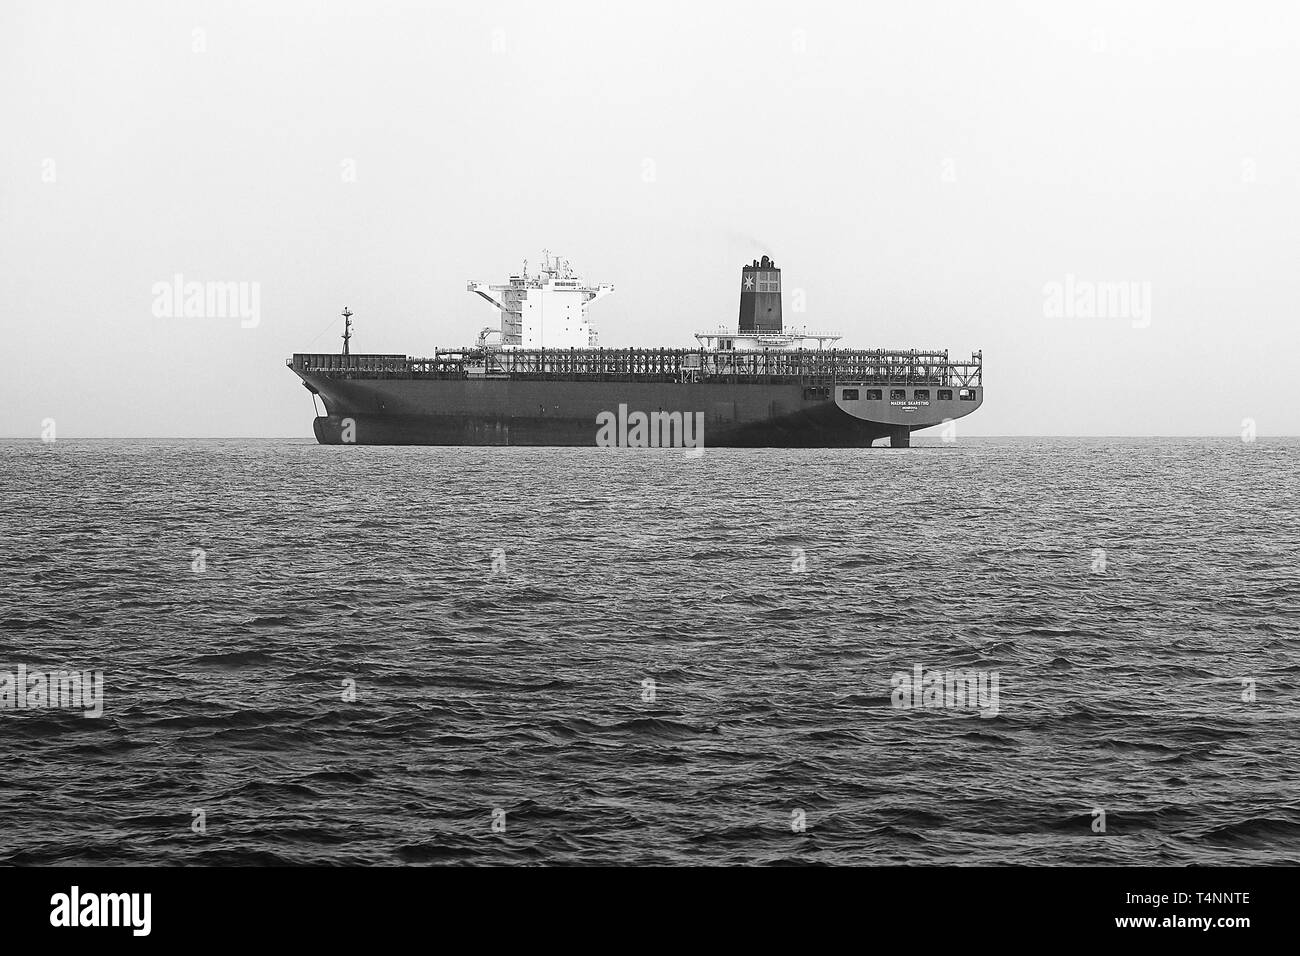 Black and White Photo Of The Empty Container Ship, MAERSK SKARSTIND, Anchored Off Victoria Harbour, Hong Kong. - Stock Image